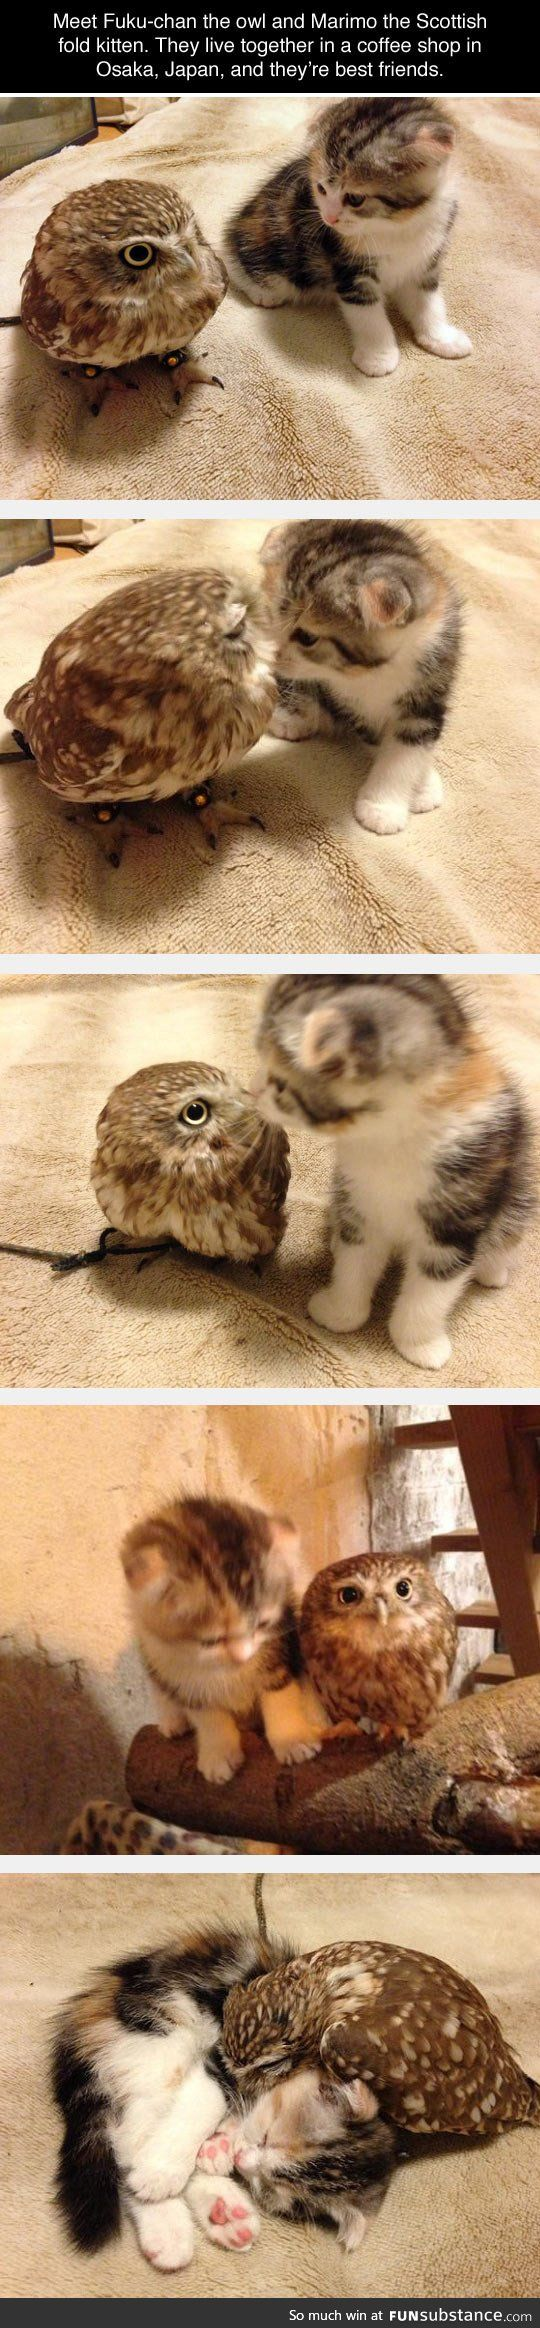 Owl and cat buddies for life DIMELO DIMELO DIMELO DIMELO!!!!! LOOOOOKKKKKIIIIIIIEEEEEEEE!!!!! THEE ×2 ×ADORABLE^INFINITY!!!!!